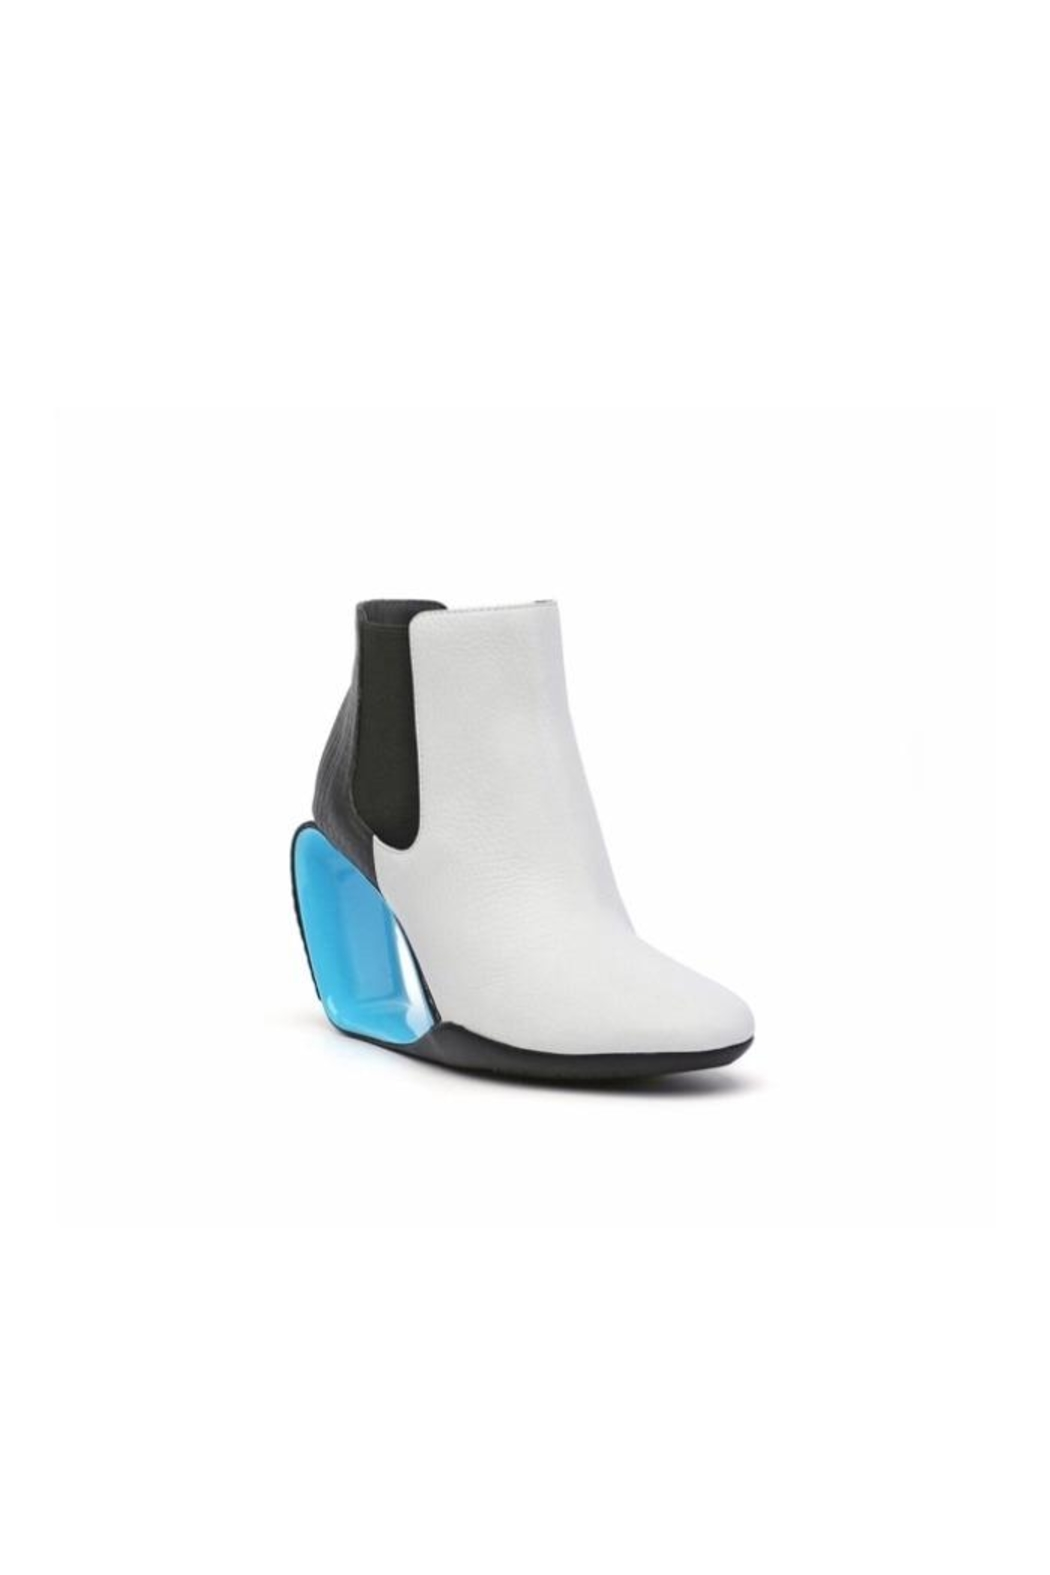 United Nude Hollow Heel Bootie - Side Cropped Image